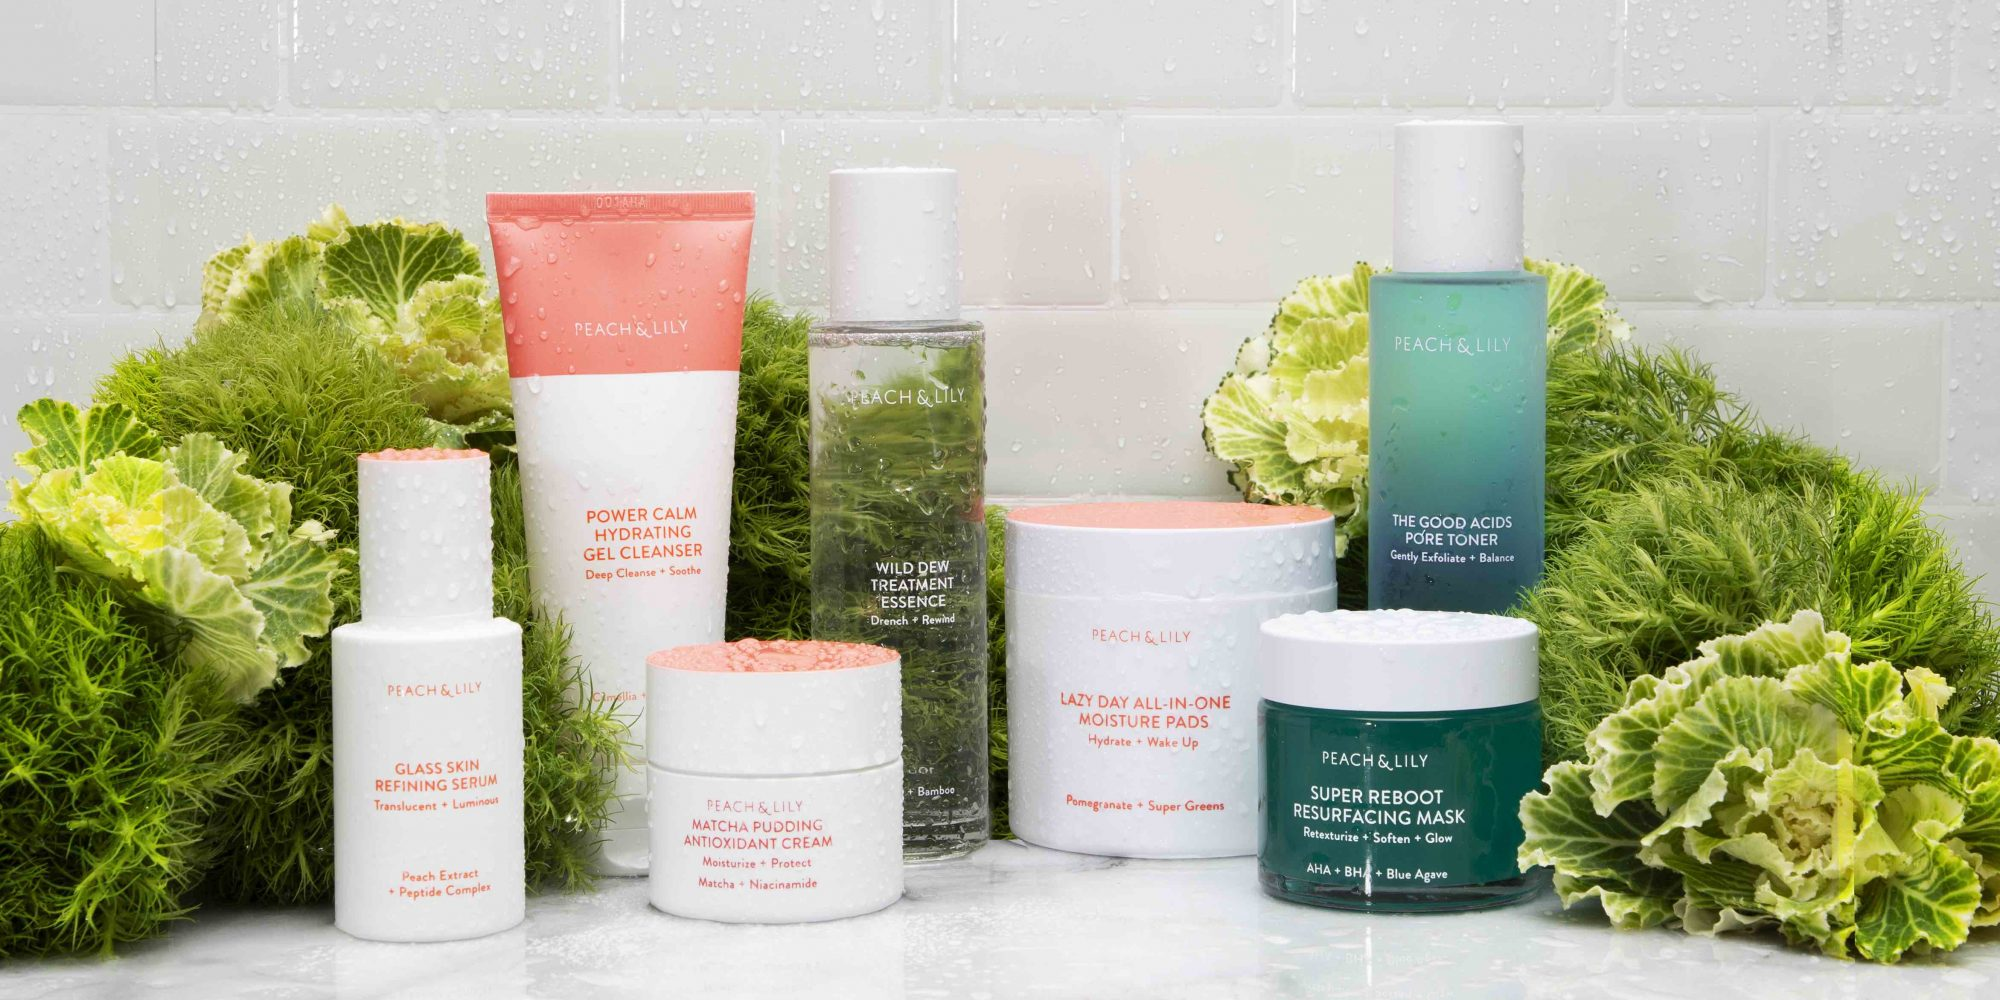 Peach & Lily's Alicia Yoon On Her K-Beauty Company's Deal With Sandbridge Capital And The Current Skincare Moment